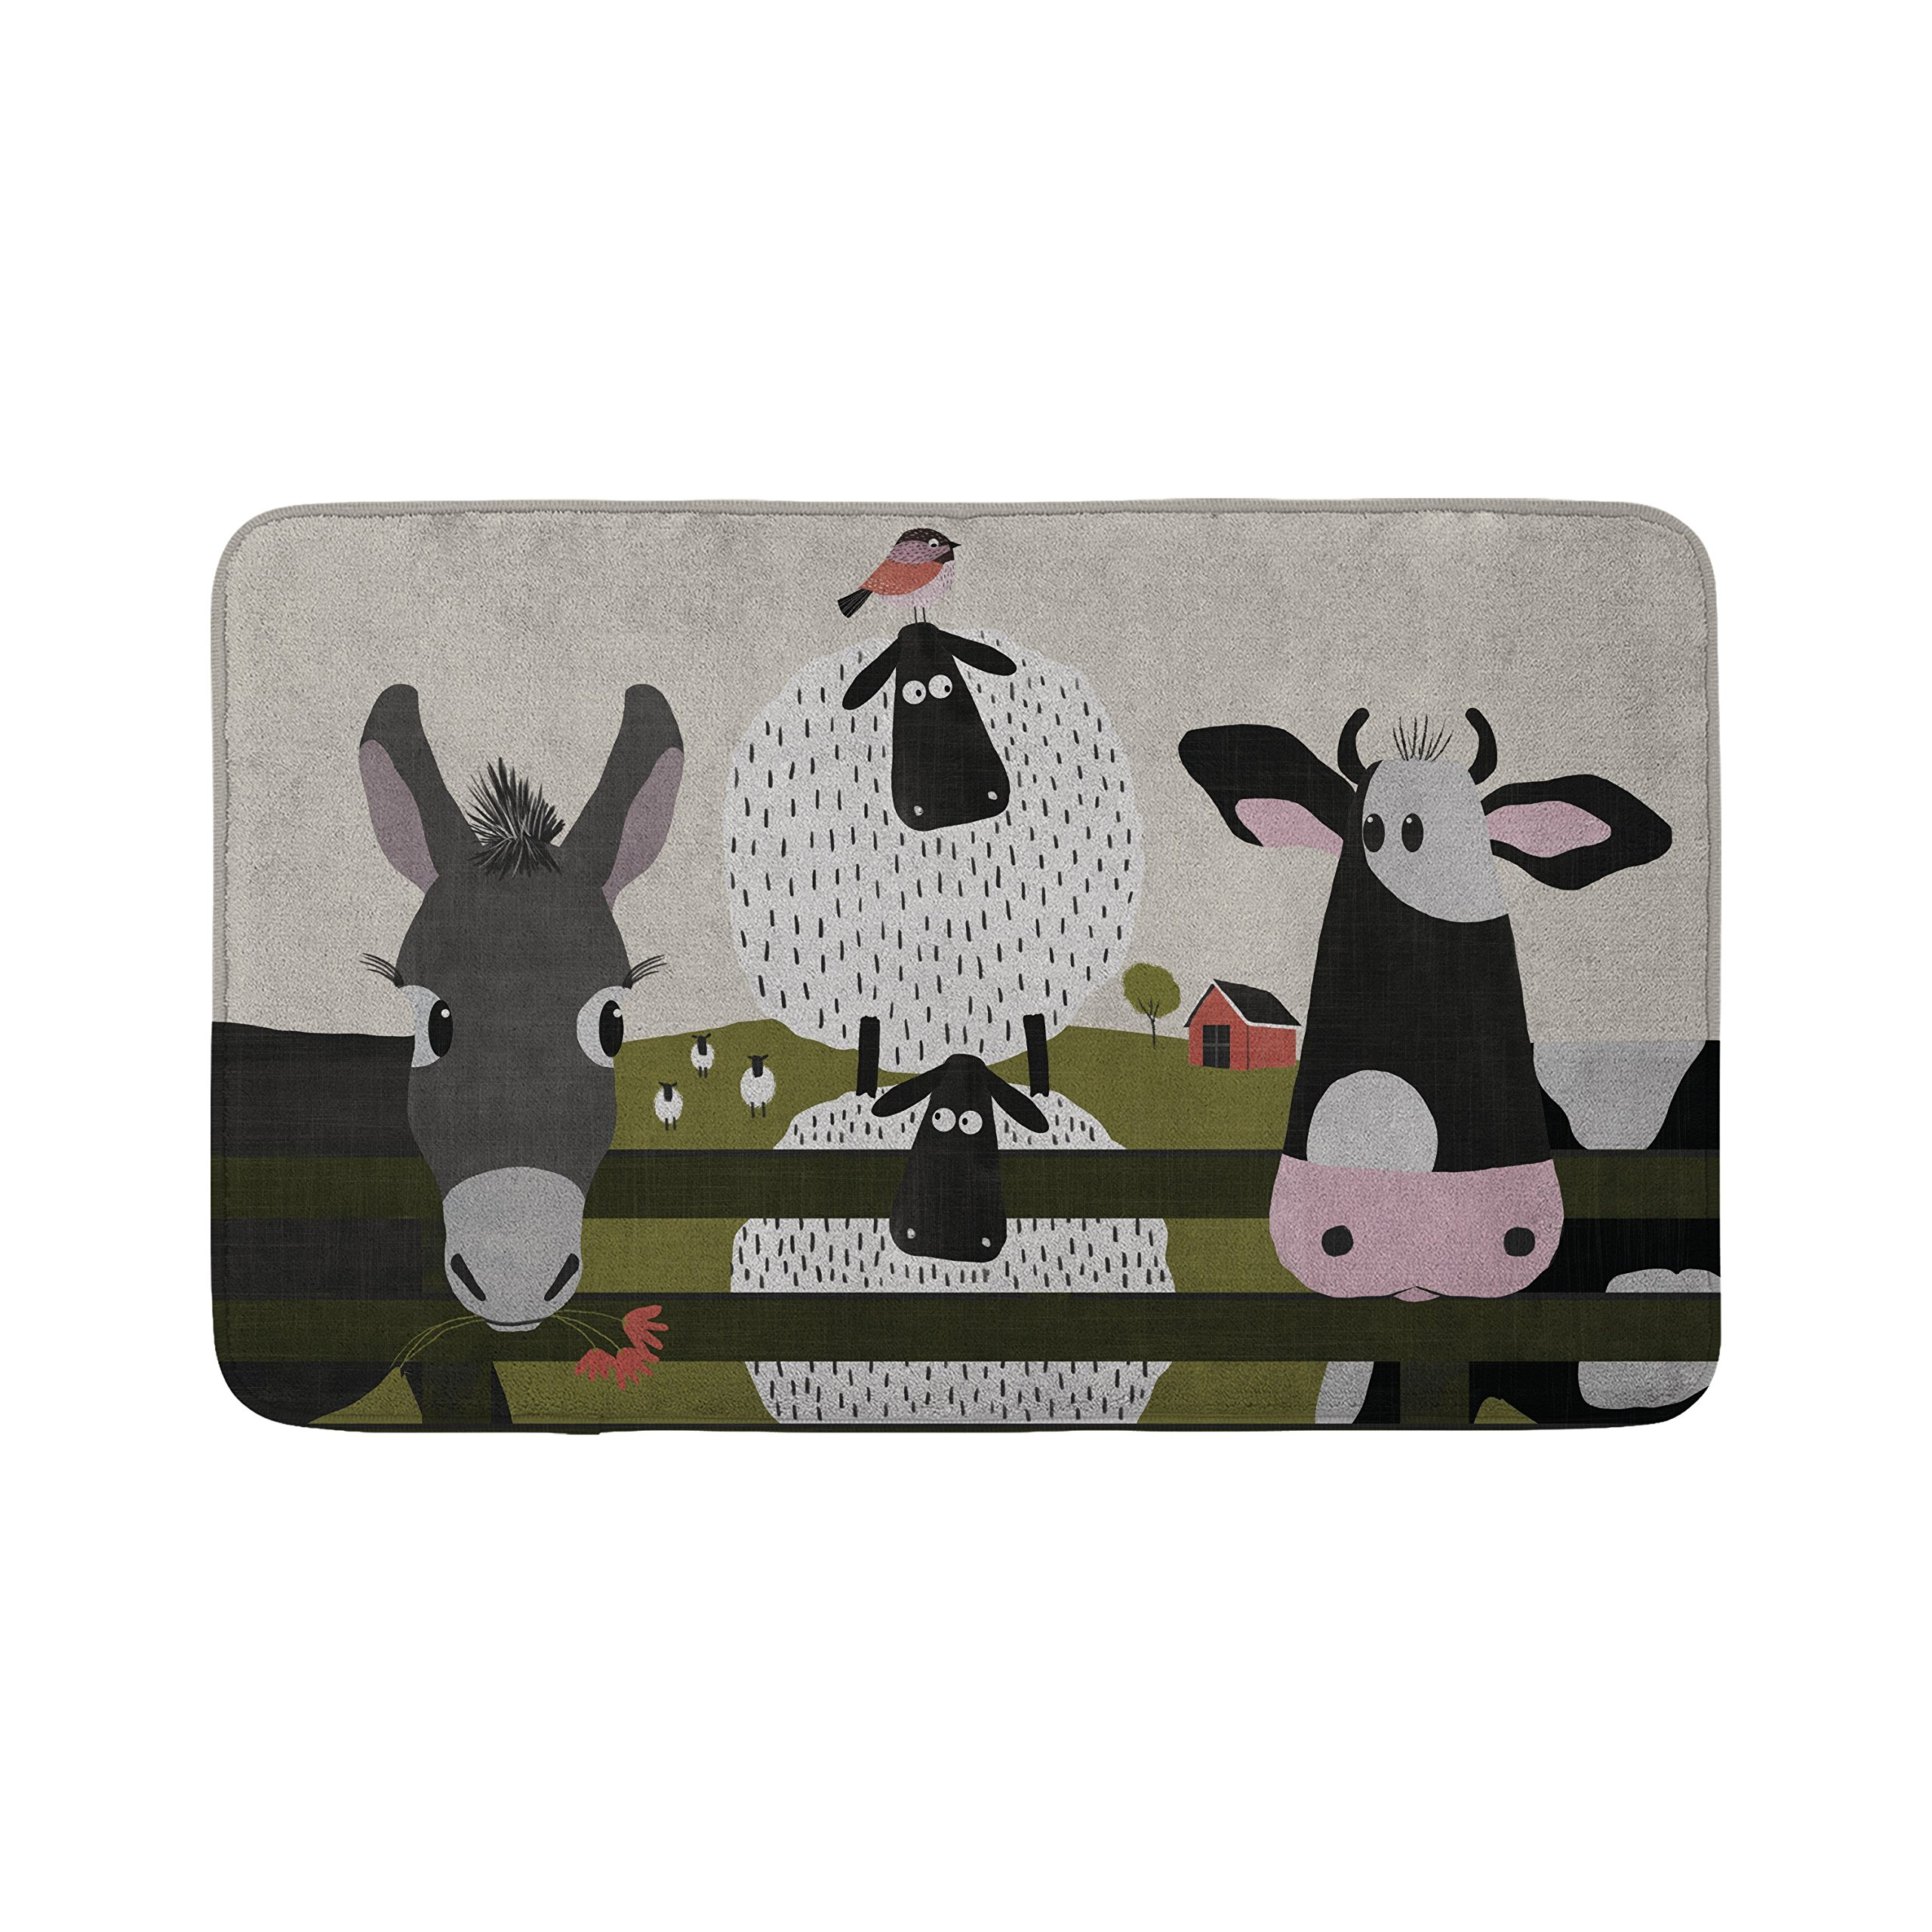 Mouse + Magpie On the Farm Farm Animals Cow Sheep Donkey Bath Mat, Skid-Proof, Memory Foam, Soft, Quick-Dry Microfiber, 31''x19'' for Toddler, Kid, Child Bathroom